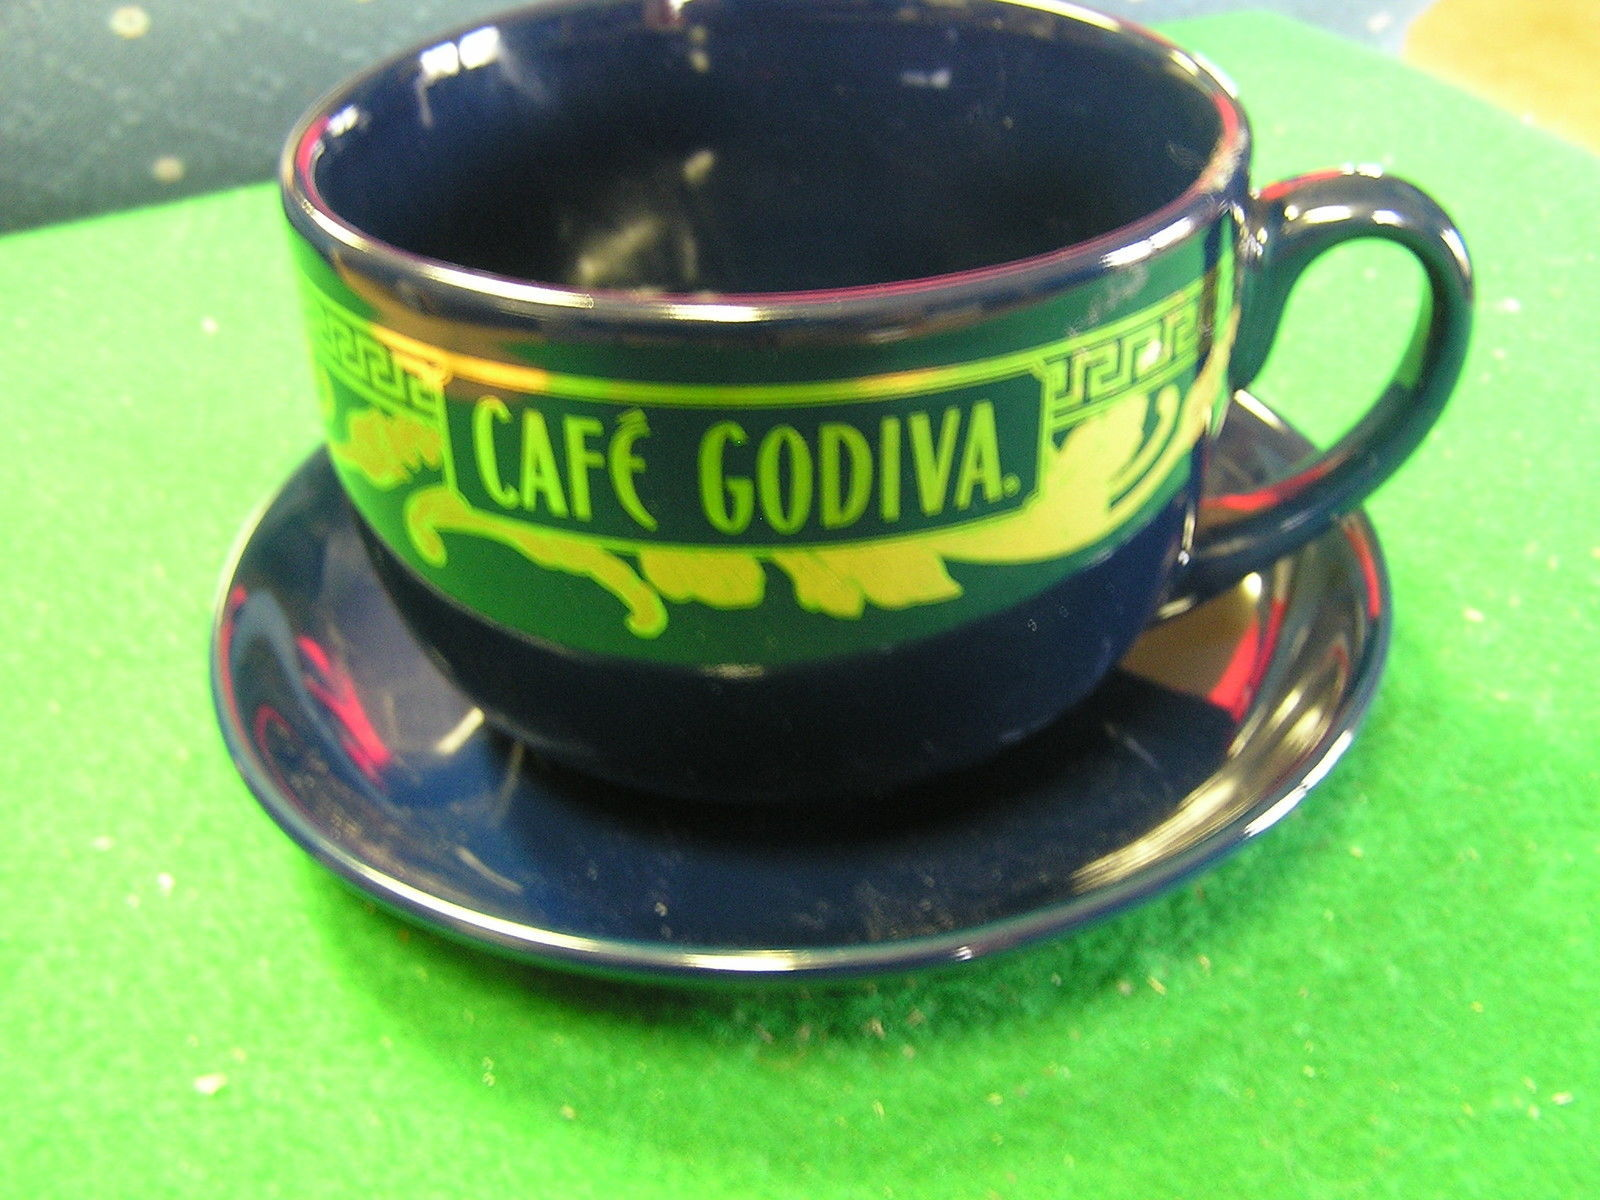 California Pantry Cup & Saucer: 2 listings